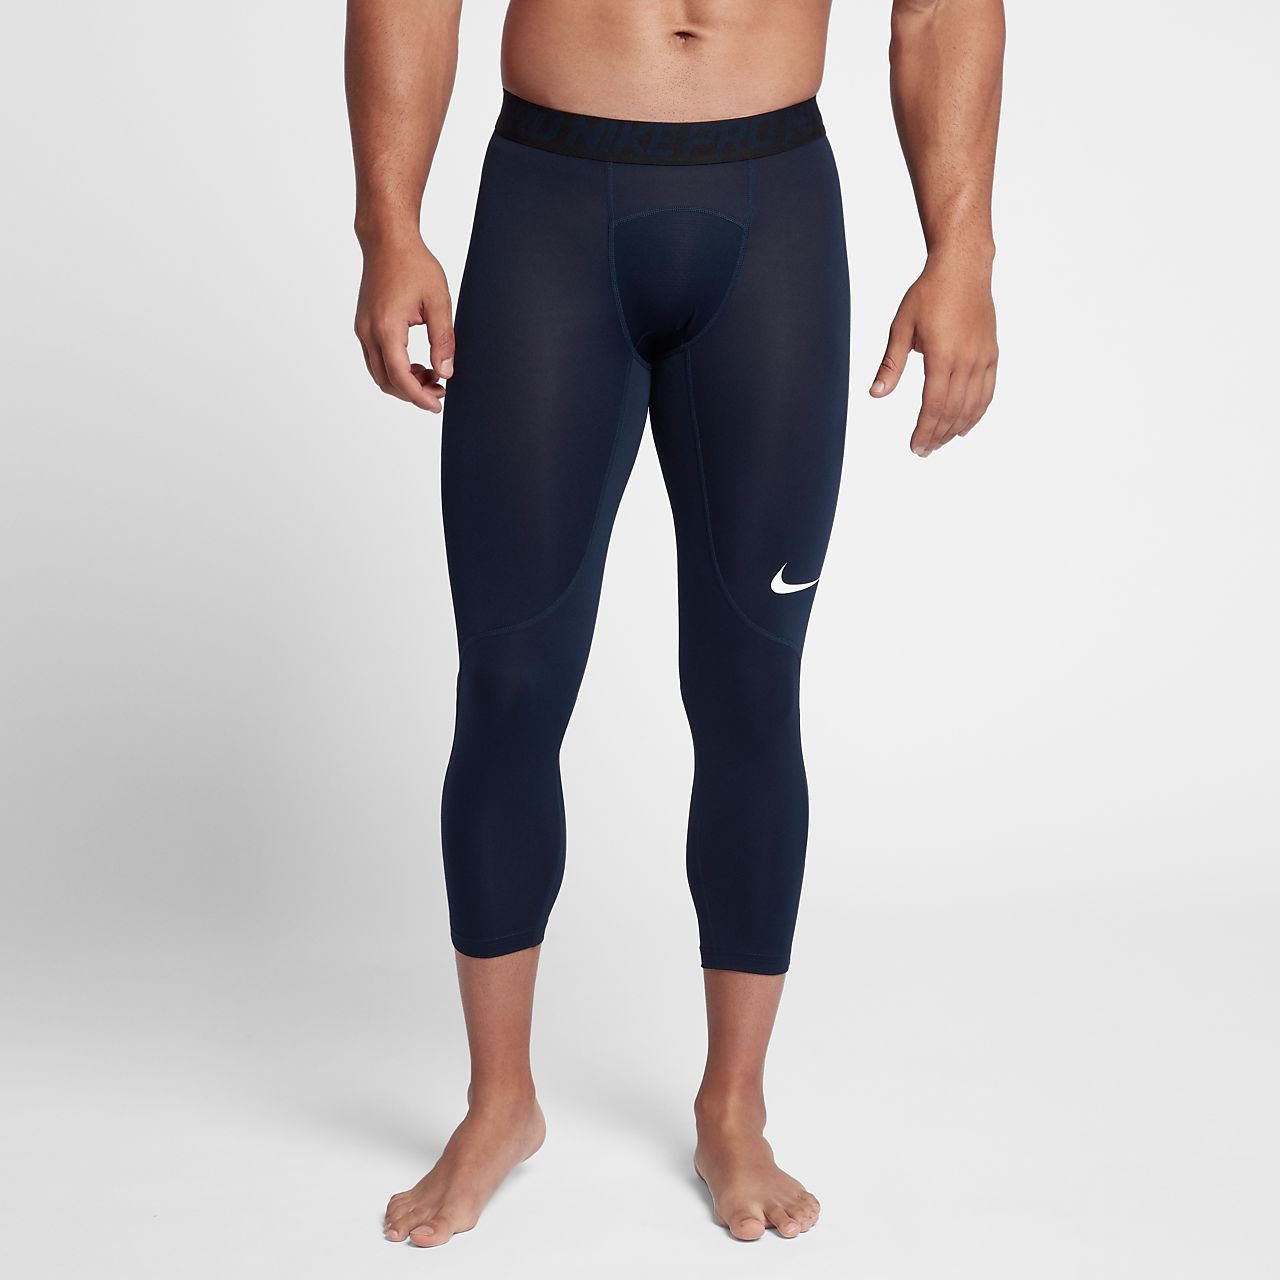 nike swim leggings